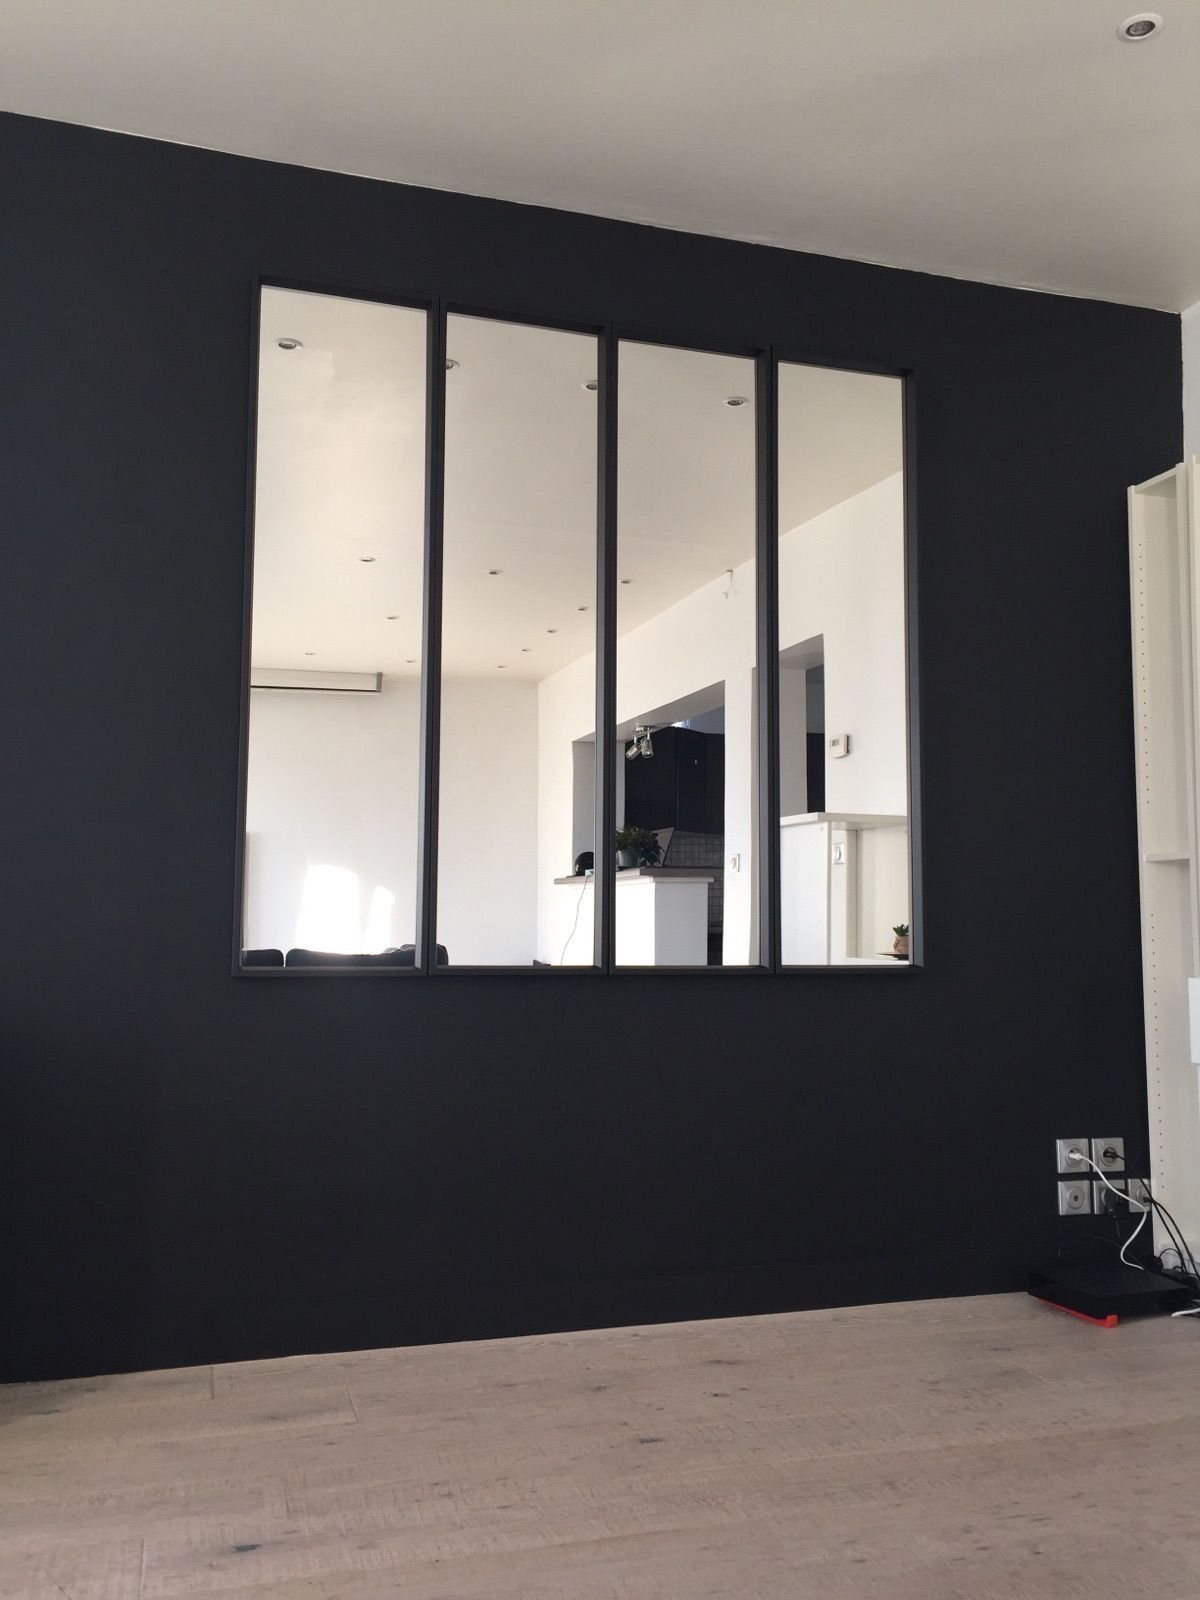 miroir nissedal noir en 2018 selection pinterest miroir verriere verriere et miroir. Black Bedroom Furniture Sets. Home Design Ideas